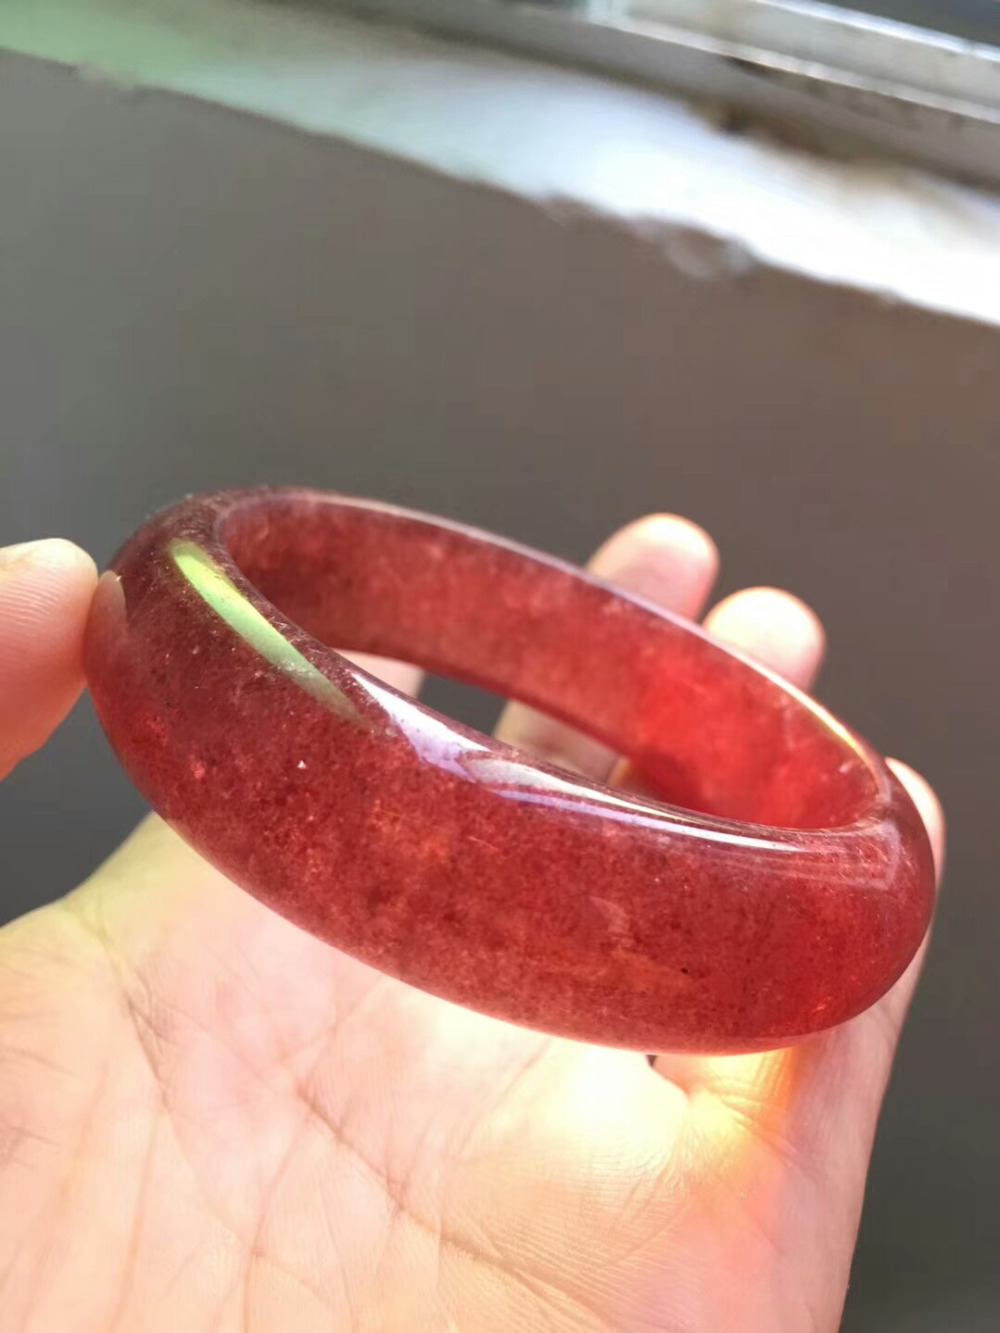 Genuine Natural Ice Red Strawberry Quartz Bangles Lady Bracelets Crystal Wedding Bangle Inner Diameter 56mm AAAAAA Drop ShippingGenuine Natural Ice Red Strawberry Quartz Bangles Lady Bracelets Crystal Wedding Bangle Inner Diameter 56mm AAAAAA Drop Shipping